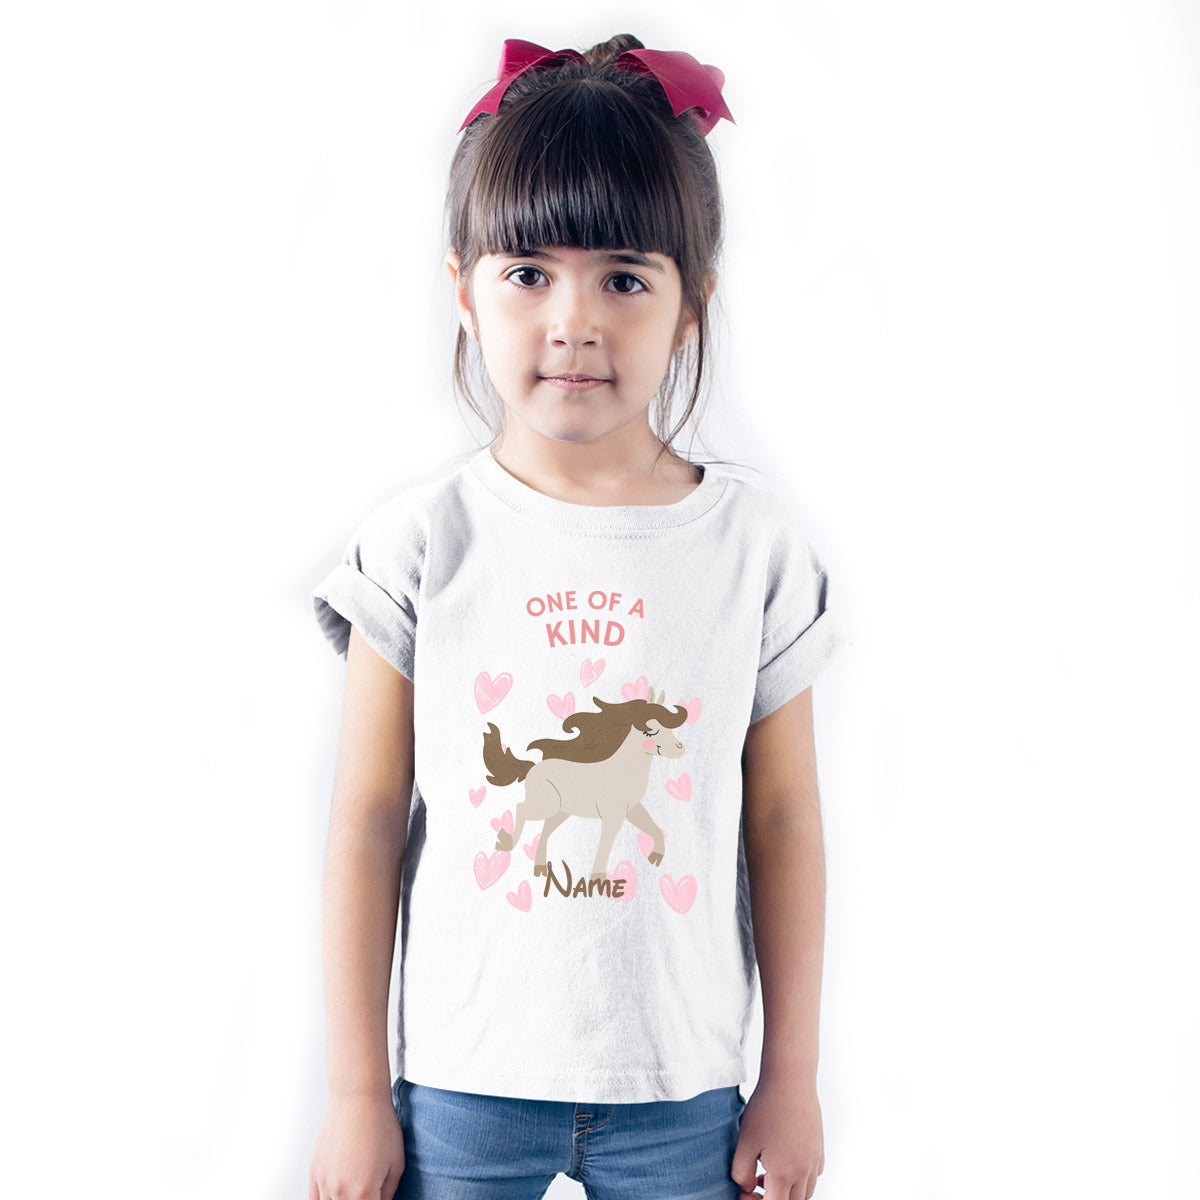 Sprinklecart Personalied One of A Kind Unicorn Poly-Cotton T Shirt for Kids (White)